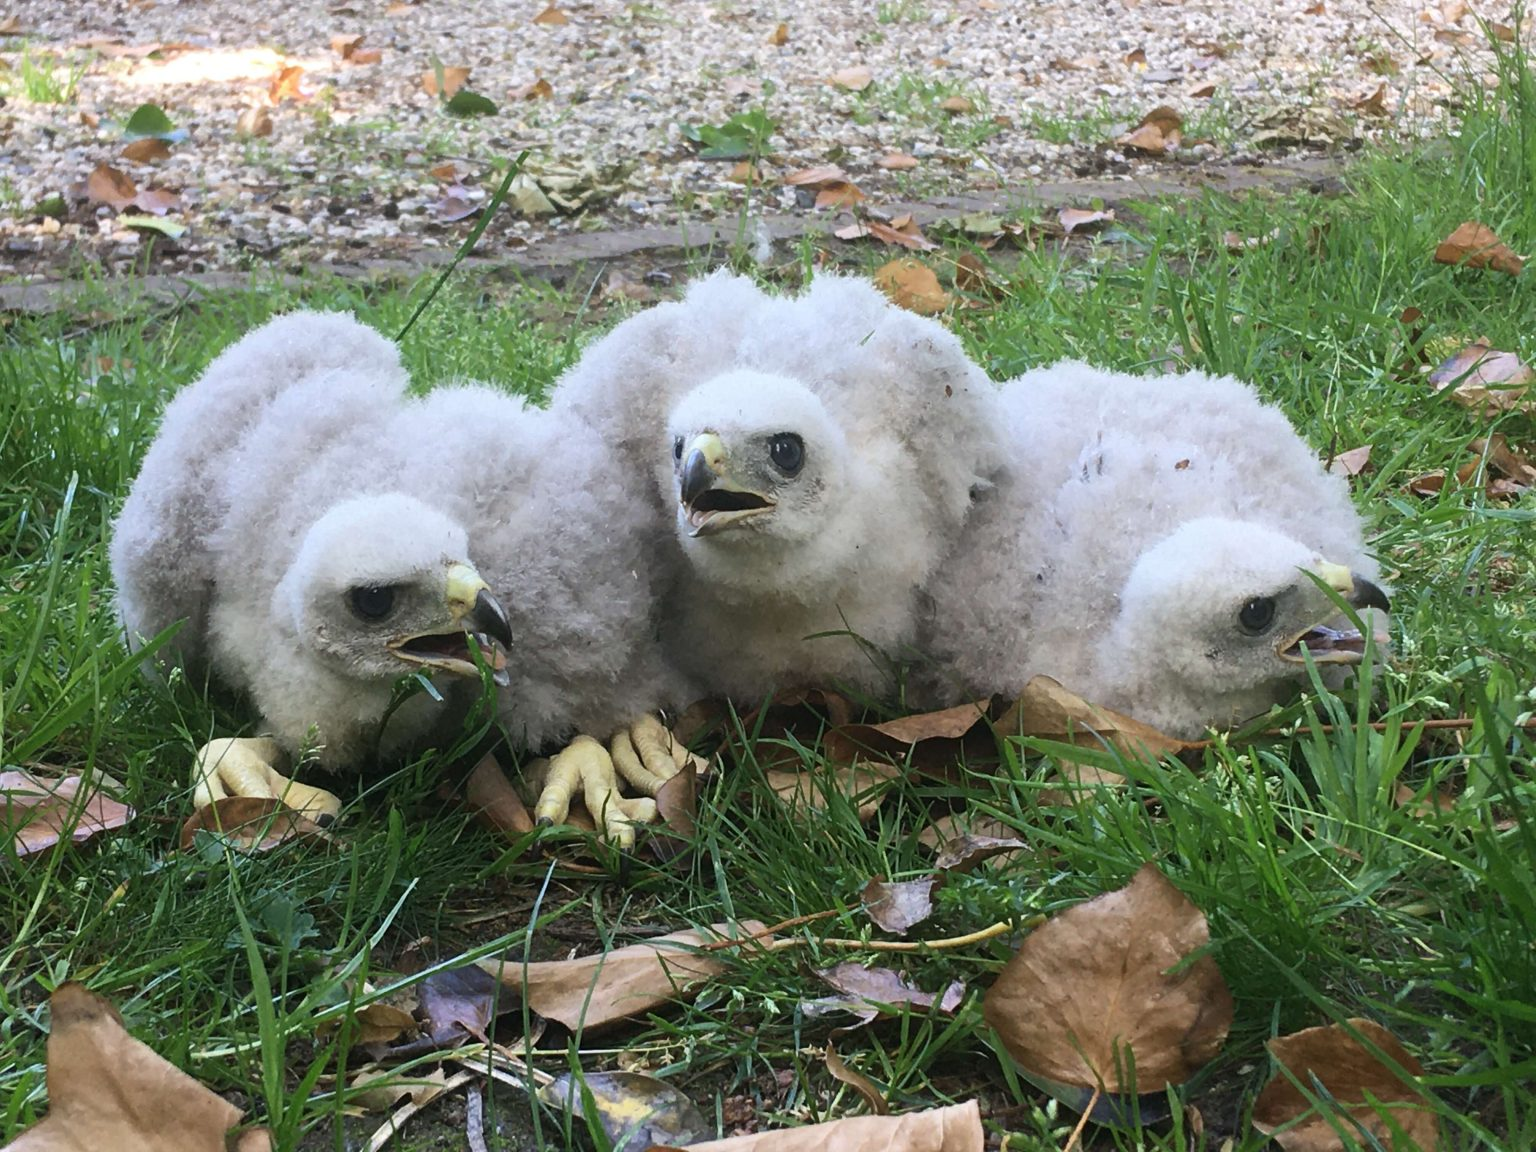 Wester-Amstel's three young hawks